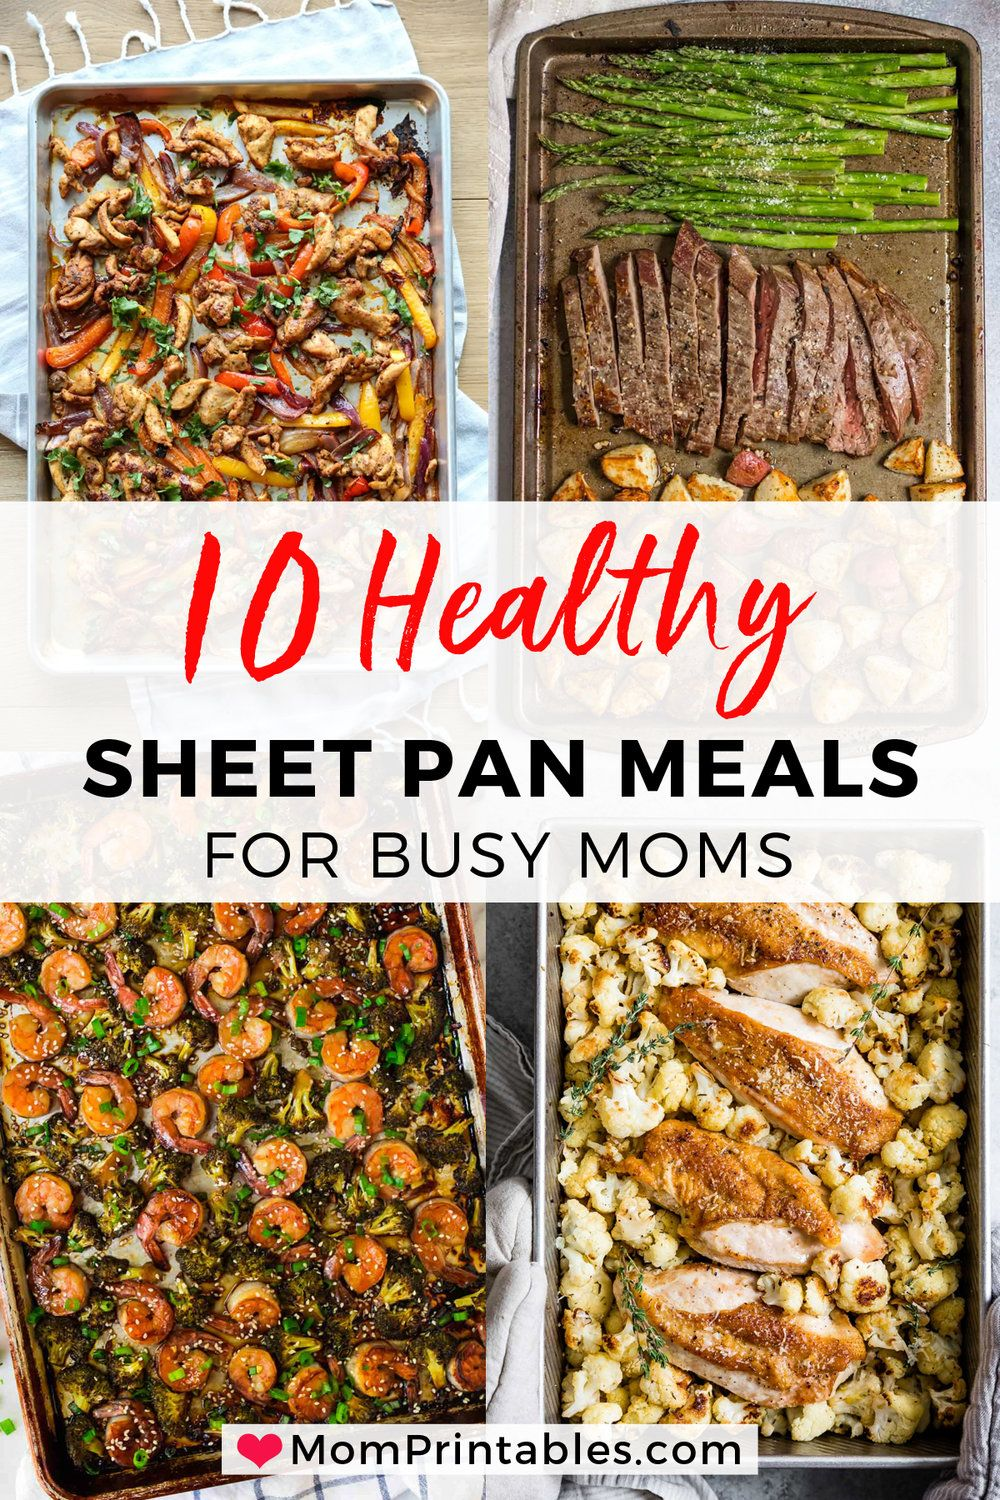 11 Healthy Sheet Pan Dinners To Try — Mom Printables - Simplifying Motherhood and Family Recipes